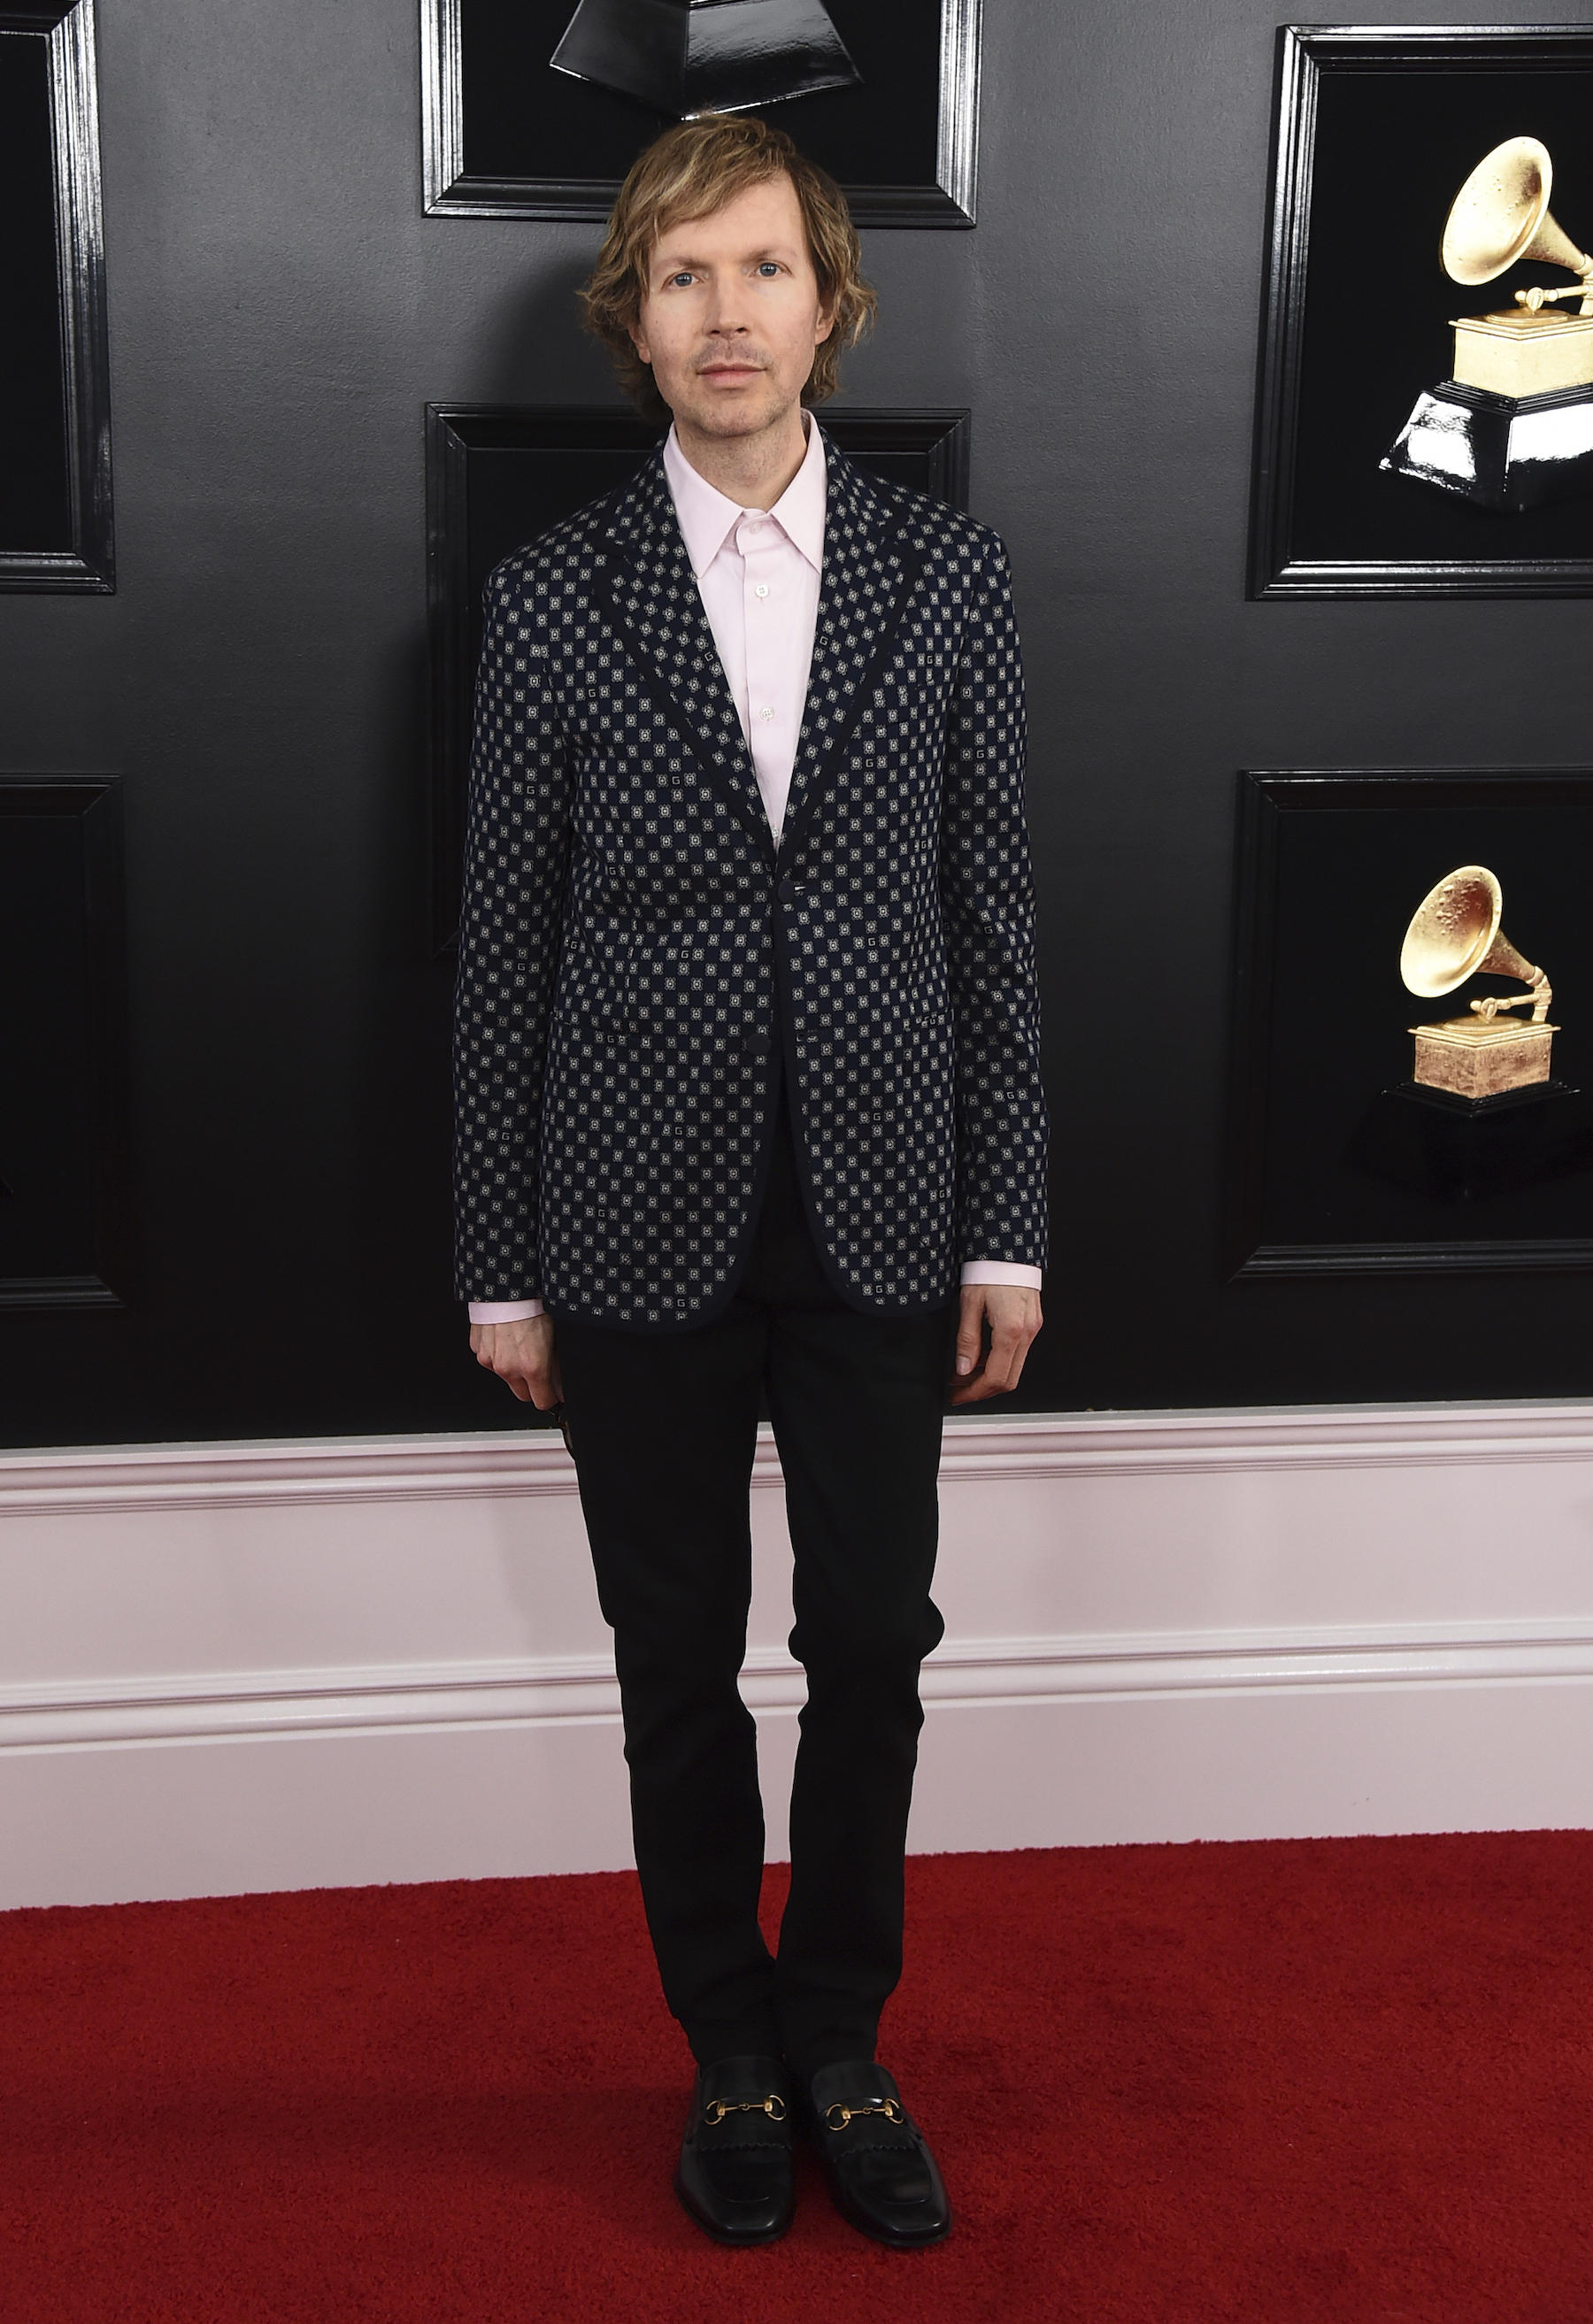 <div class='meta'><div class='origin-logo' data-origin='AP'></div><span class='caption-text' data-credit='Jordan Strauss/Invision/AP'>Beck arrives at the 61st annual Grammy Awards at the Staples Center on Sunday, Feb. 10, 2019, in Los Angeles.</span></div>